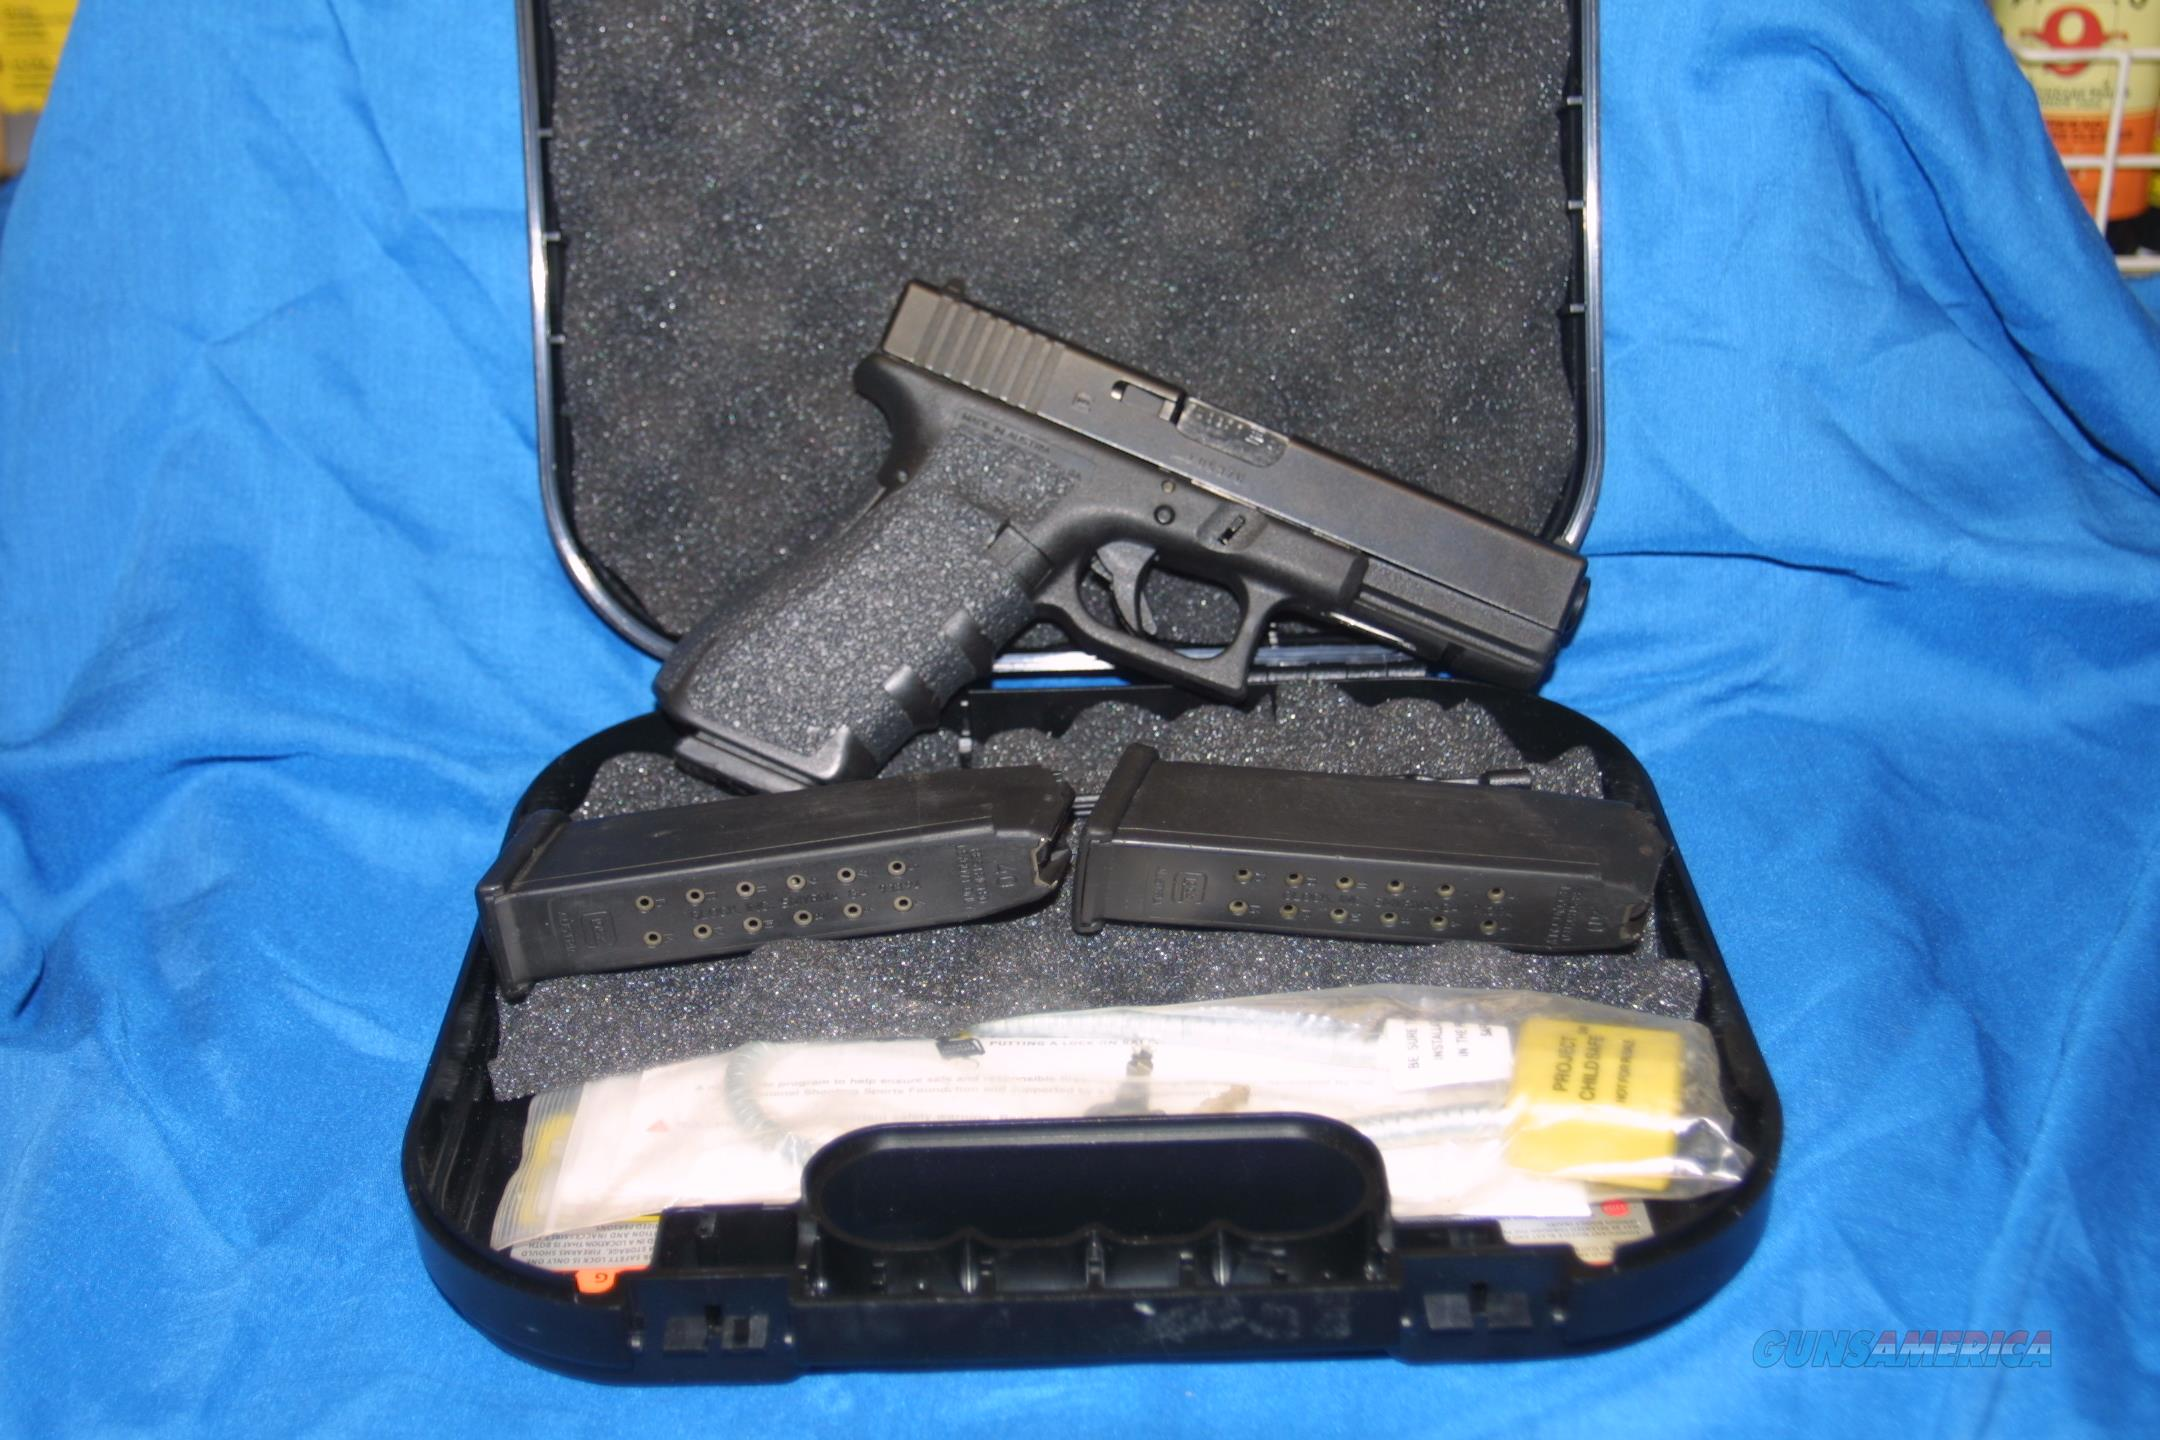 NICE PRE-OWNED GLOCK 22. GEN 3. 40 S&W. LAW ENFORECEMENT TURN  IN. GOOD + CONDITION !  Guns > Pistols > Glock Pistols > 22